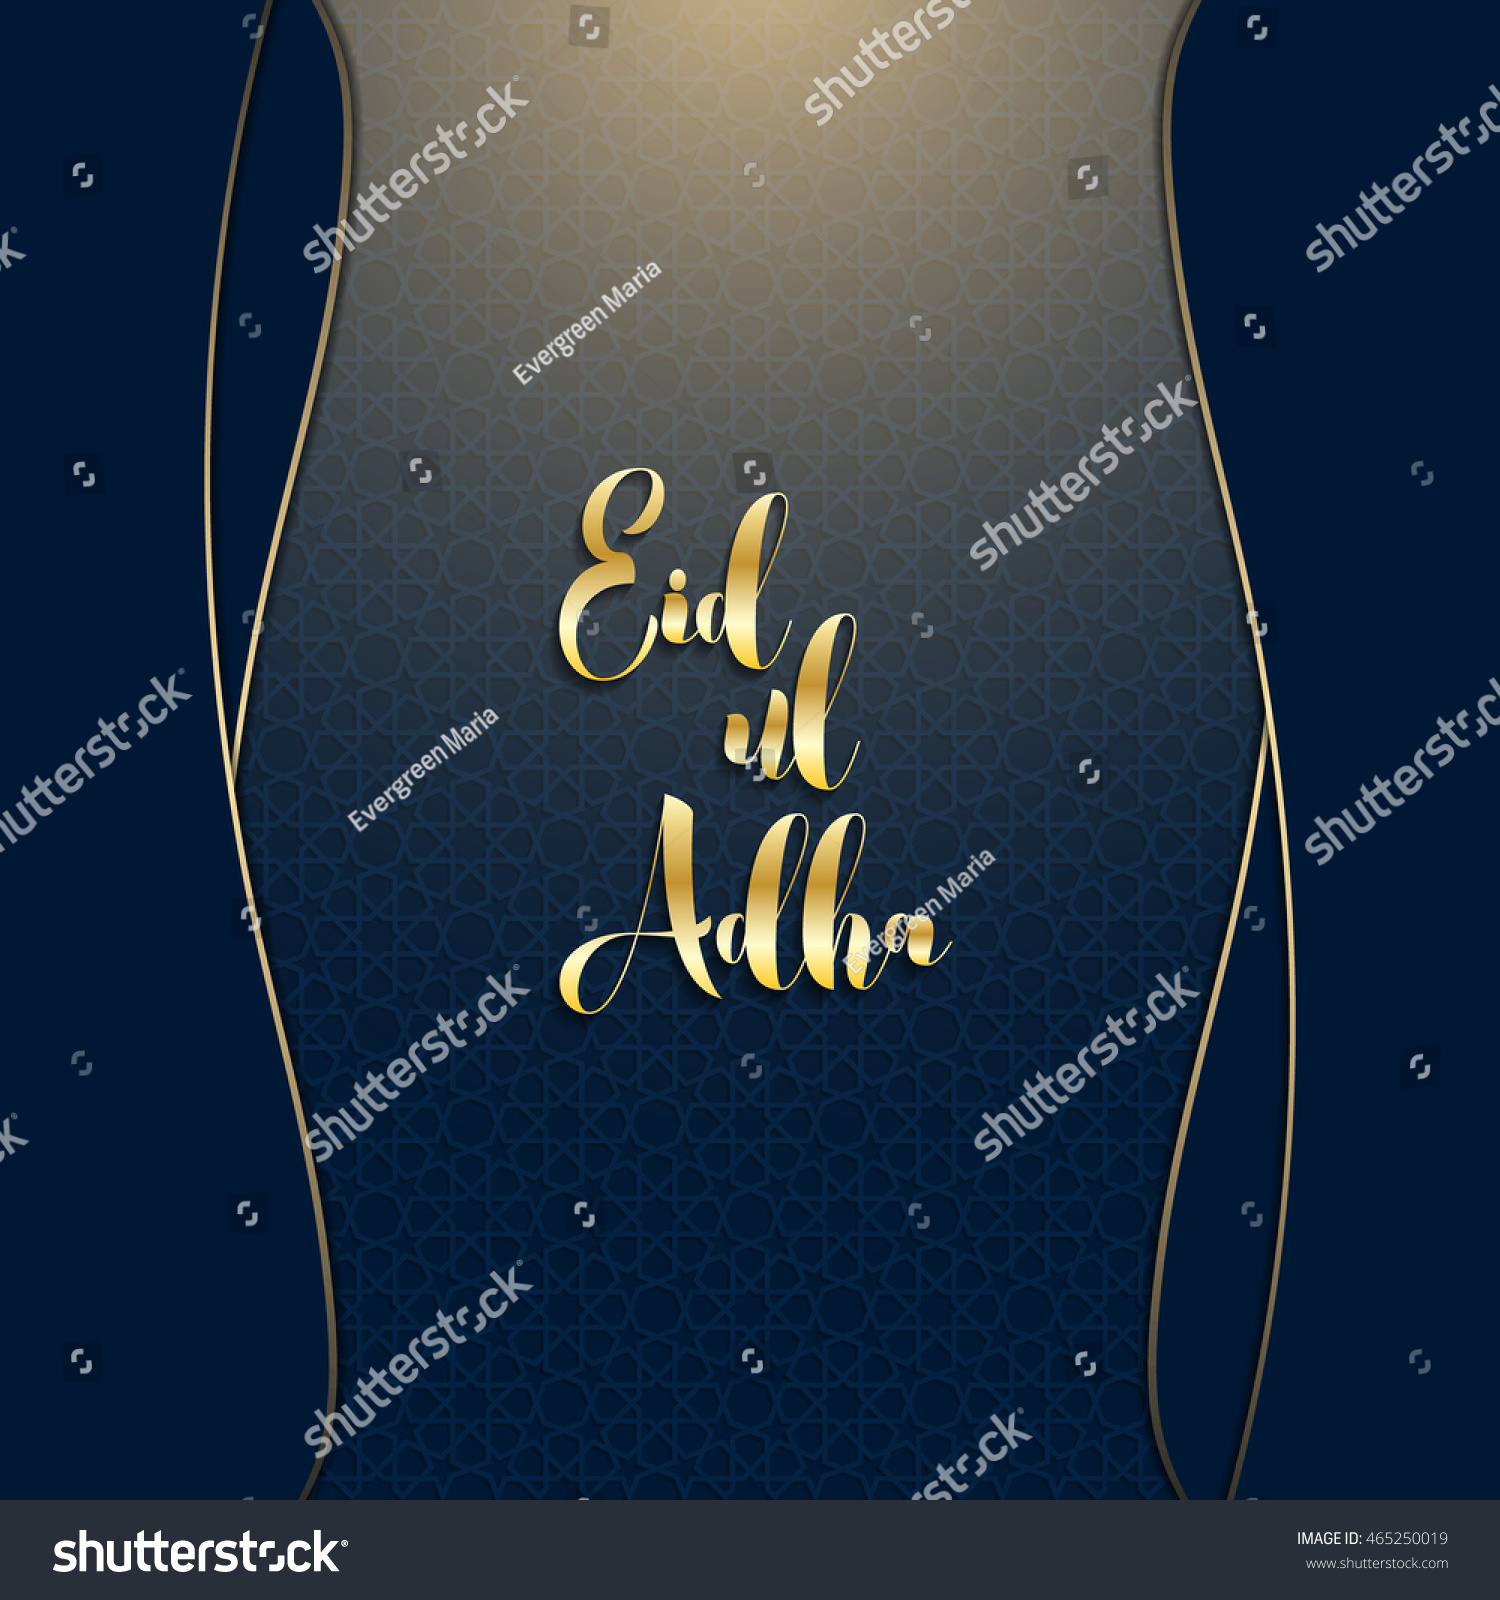 Eid mubarak arabic calligraphy eid ul stock vector 465250019 eid mubarak arabic calligraphy eid ul adha beautiful greeting card eid ul adha kristyandbryce Image collections